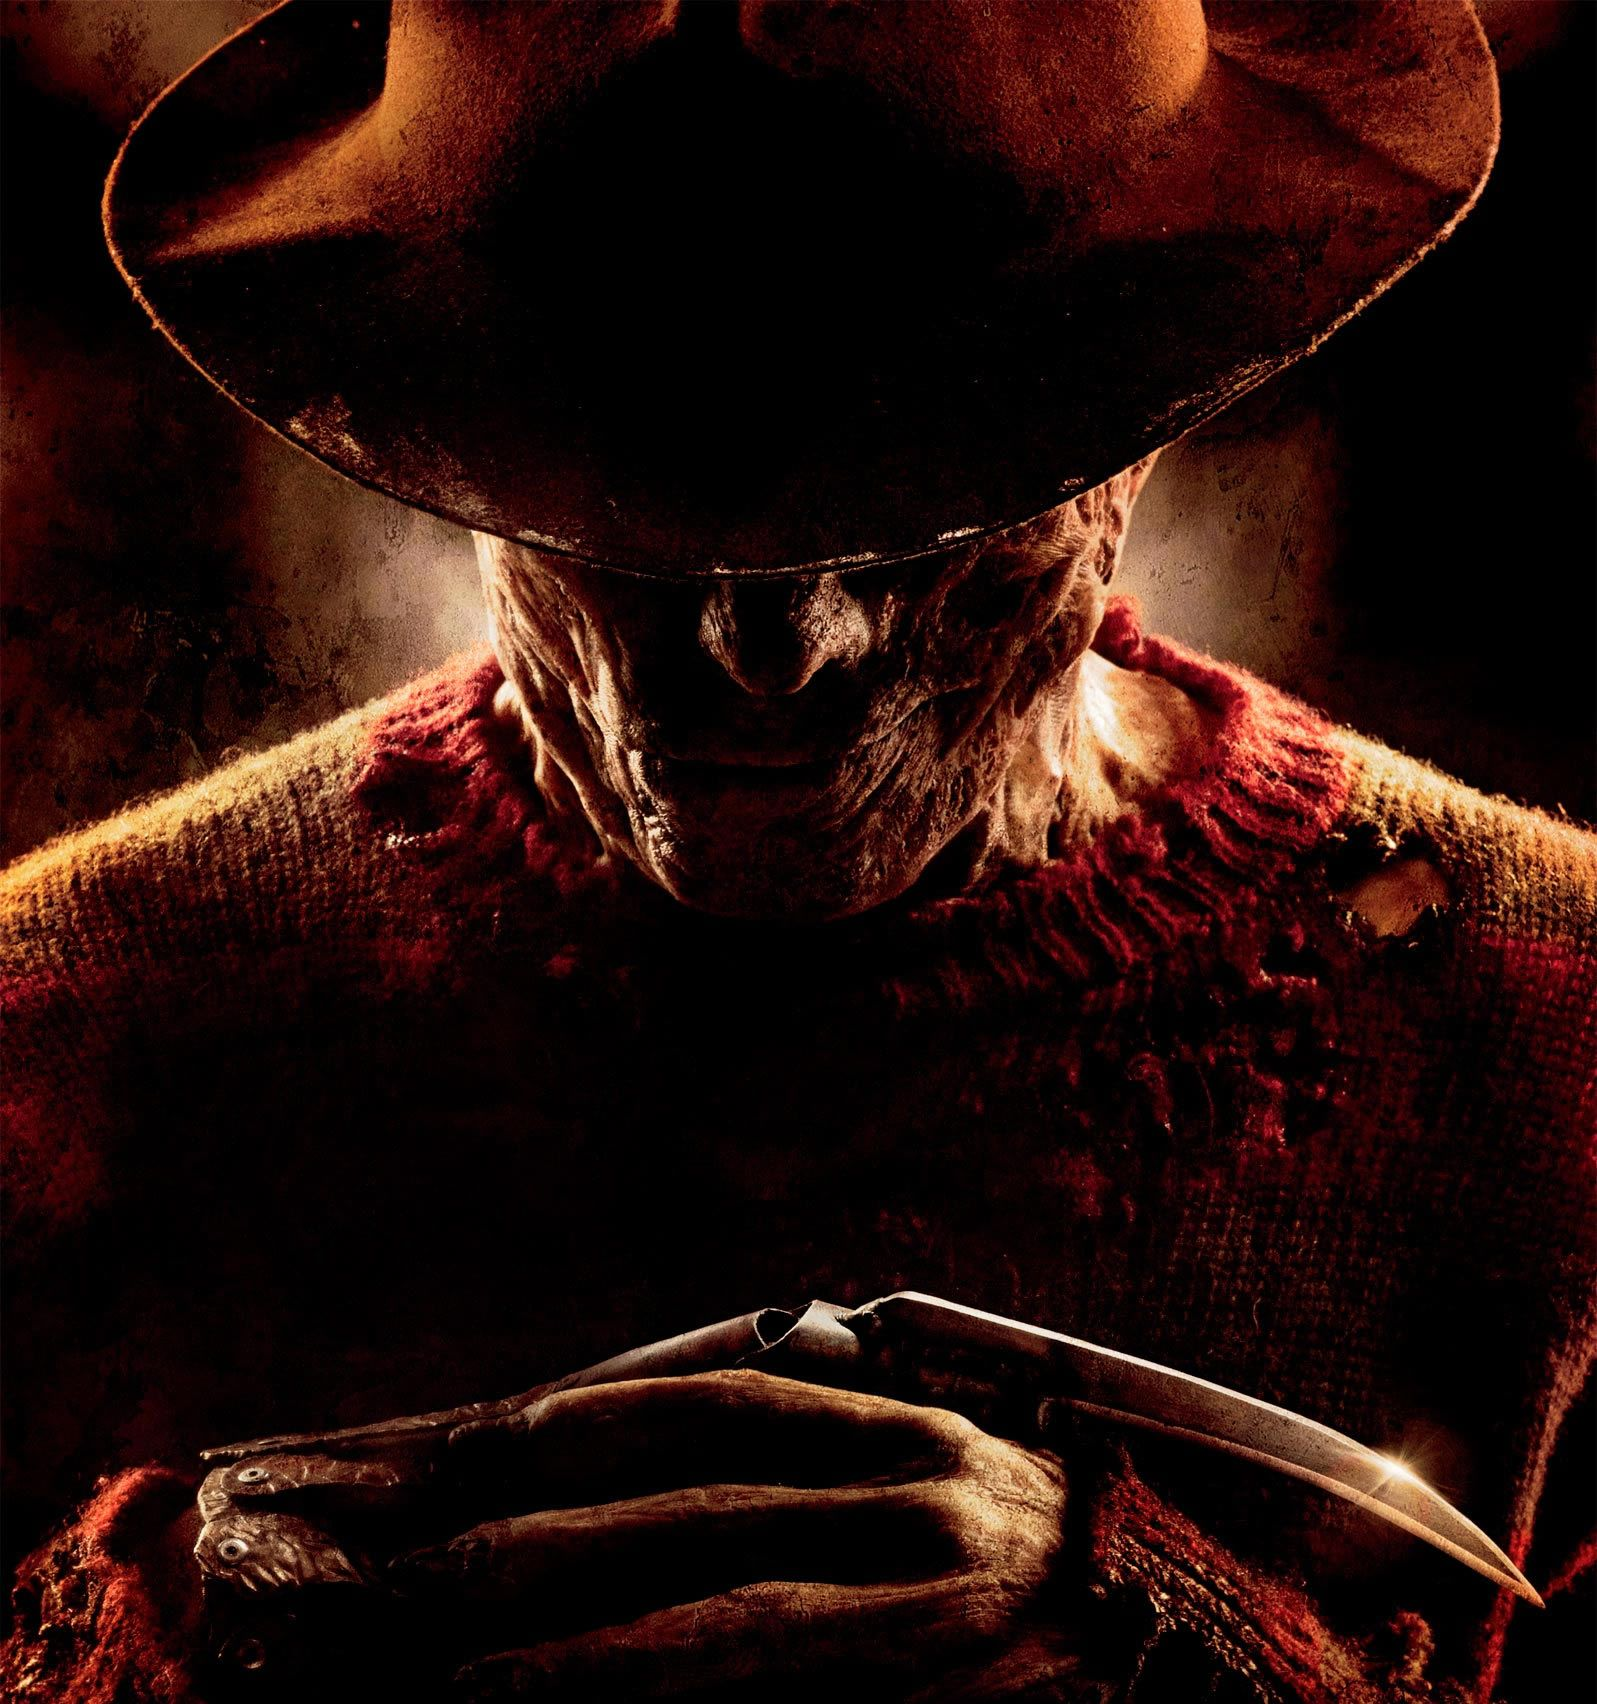 http://galyonkin.com/wp-content/uploads/2010/05/nightmare-on-elm-street-poster_cr.jpg